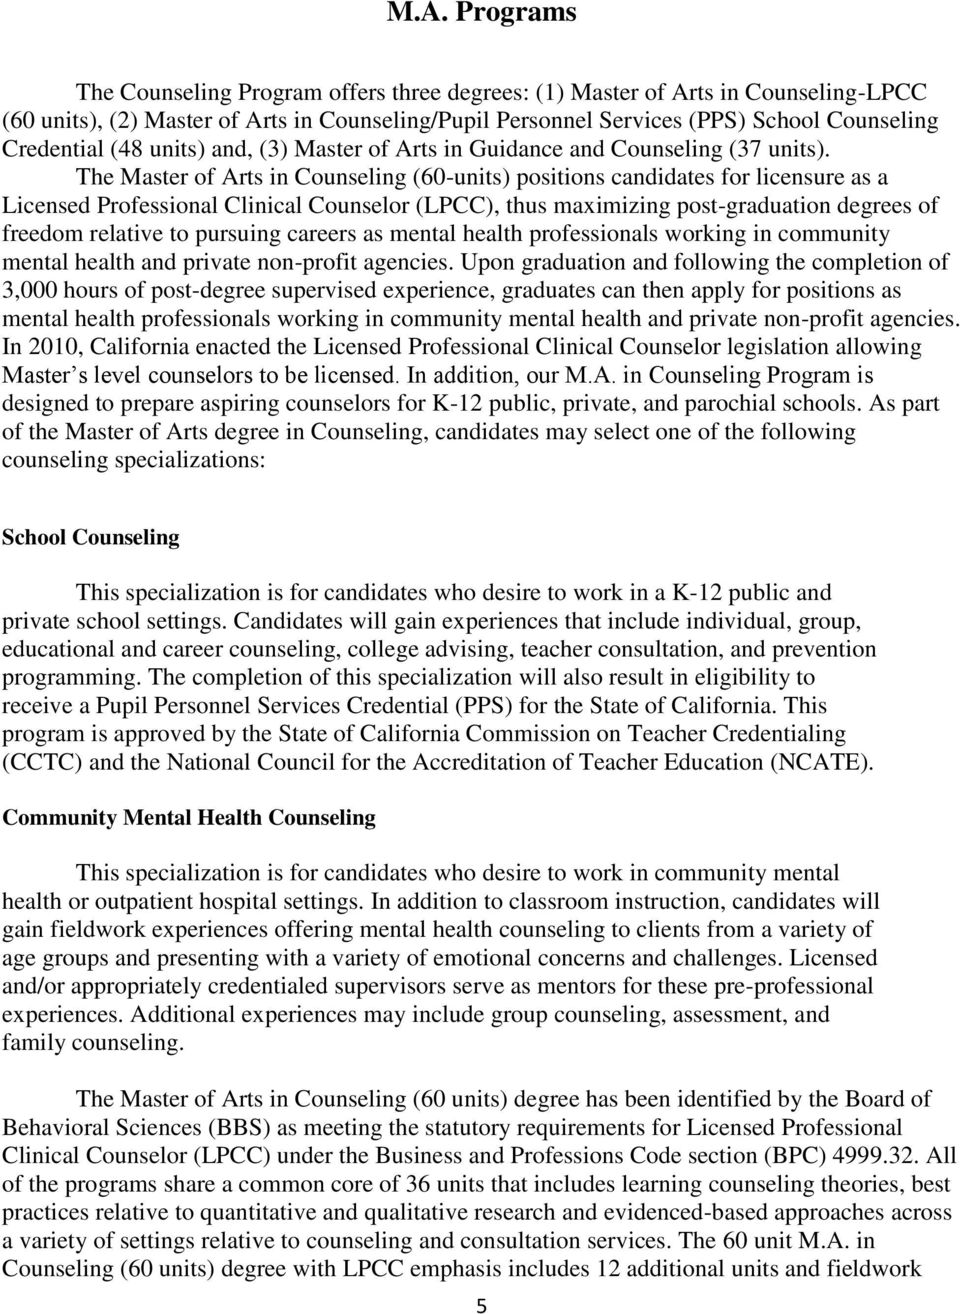 The Master of Arts in Counseling (60-units) positions candidates for licensure as a Licensed Professional Clinical Counselor (LPCC), thus maximizing post-graduation degrees of freedom relative to